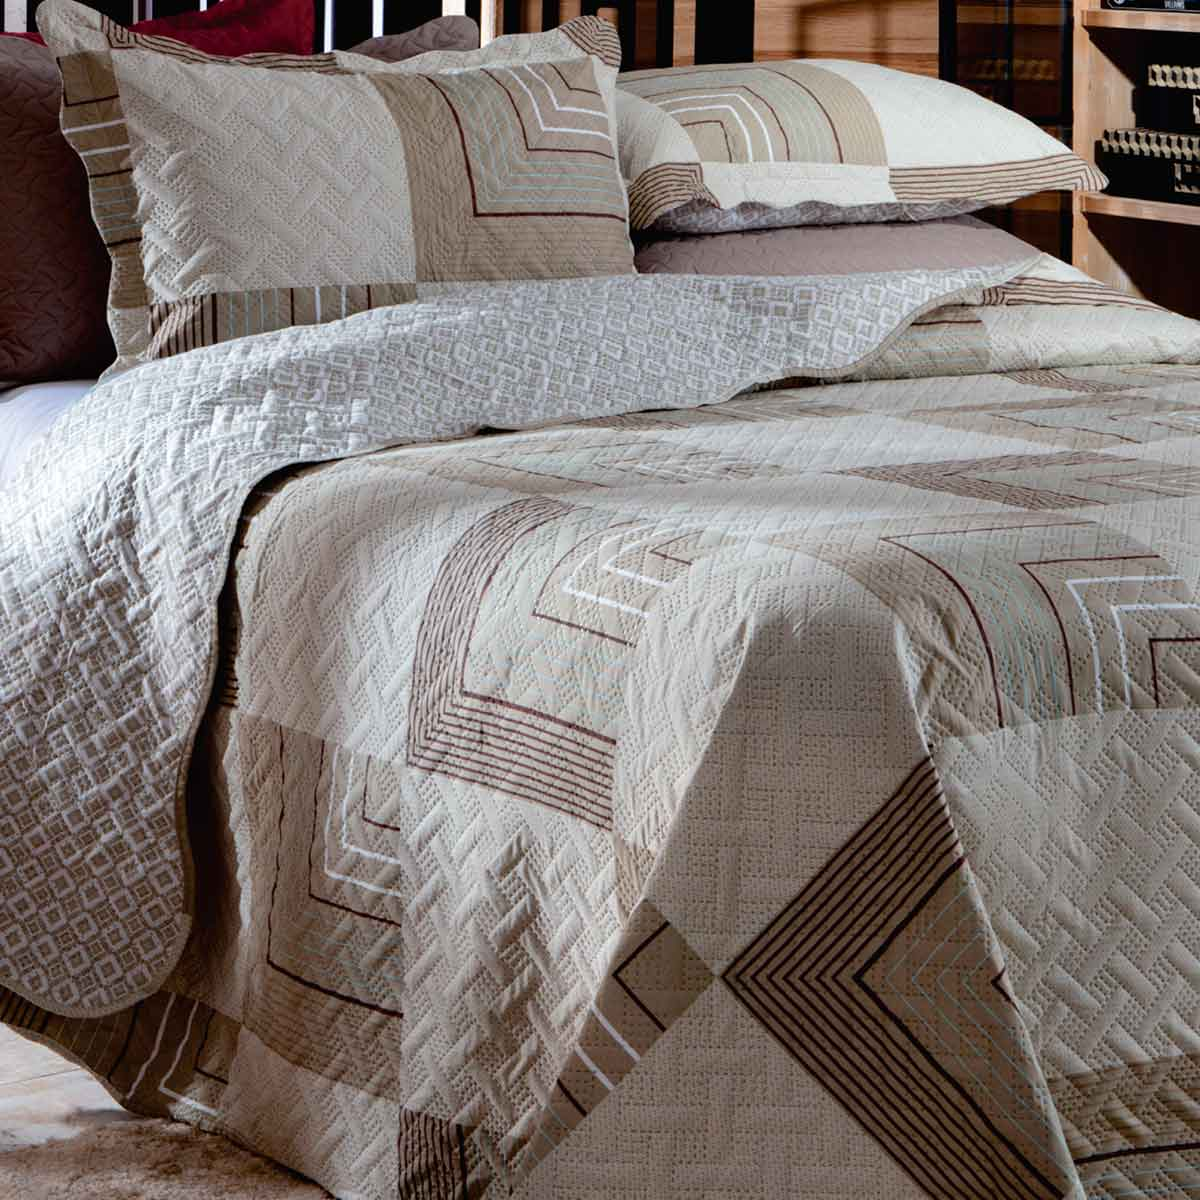 Cobreleito Patchwork Ultra Solteiro 2Pcs London Bristol 6